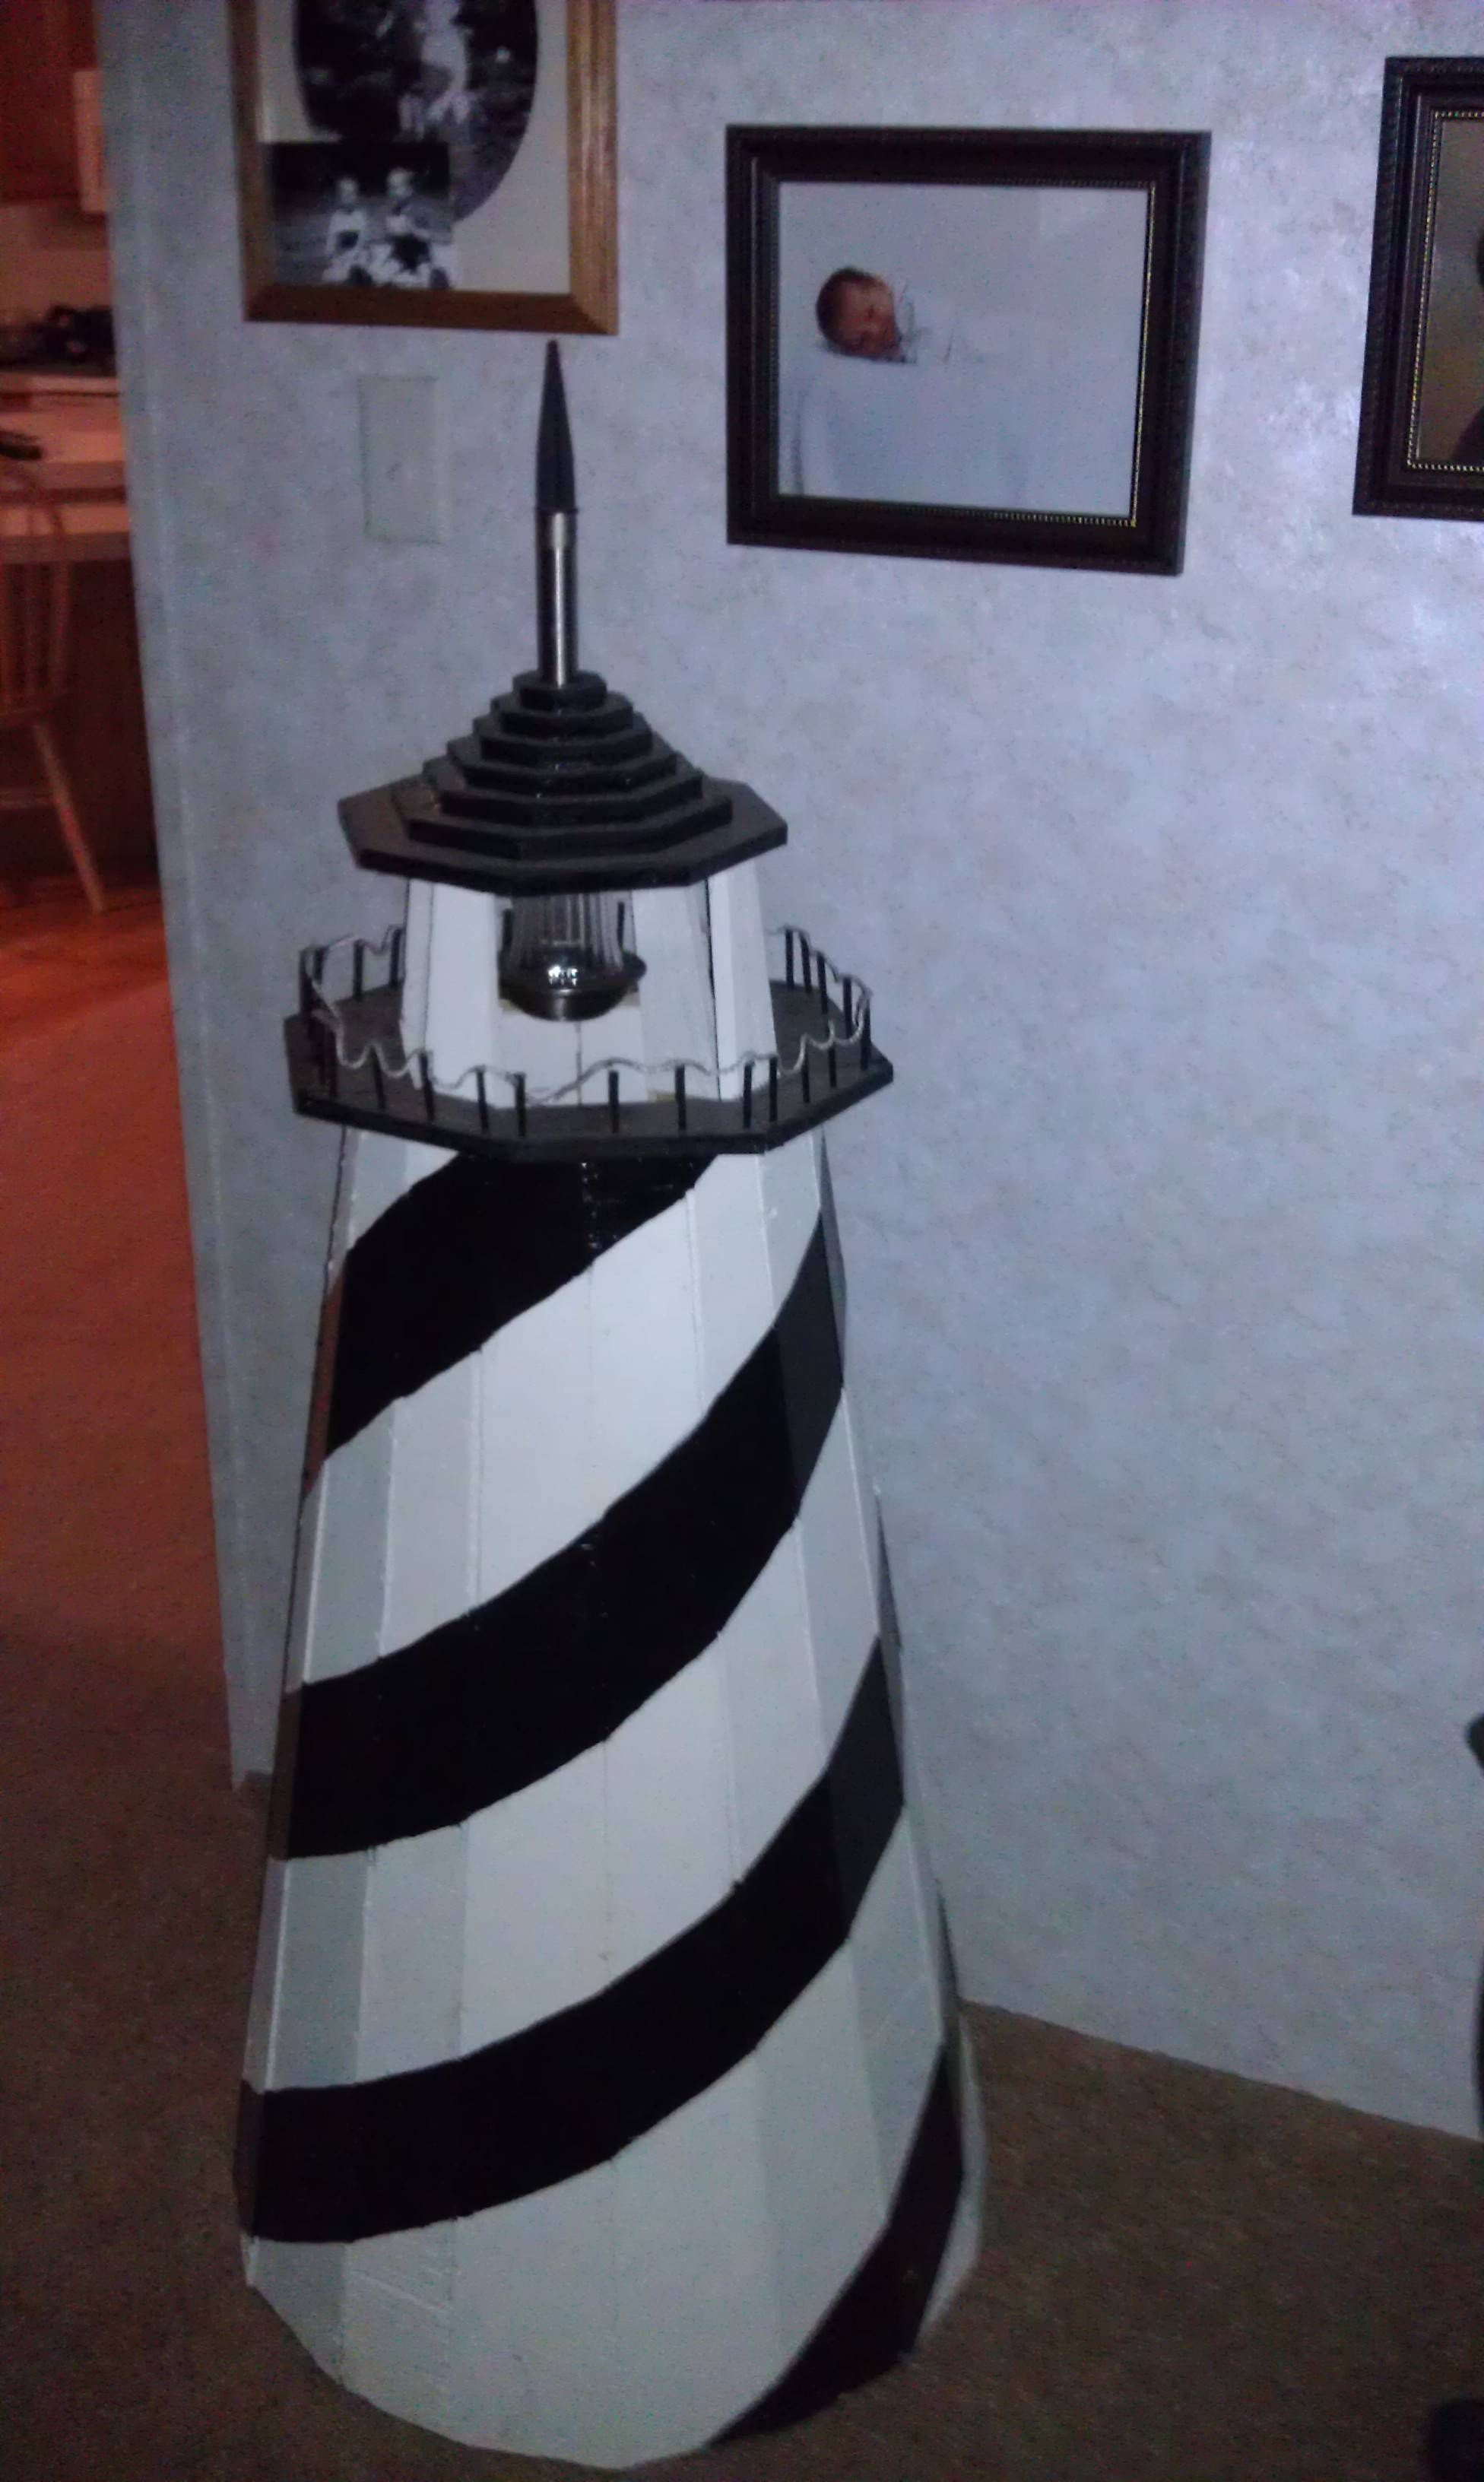 Diy make a clay pot lighthouse diy craft projects - Lighthouse For School Project Has A Solar Lamp Upside Down Through Top